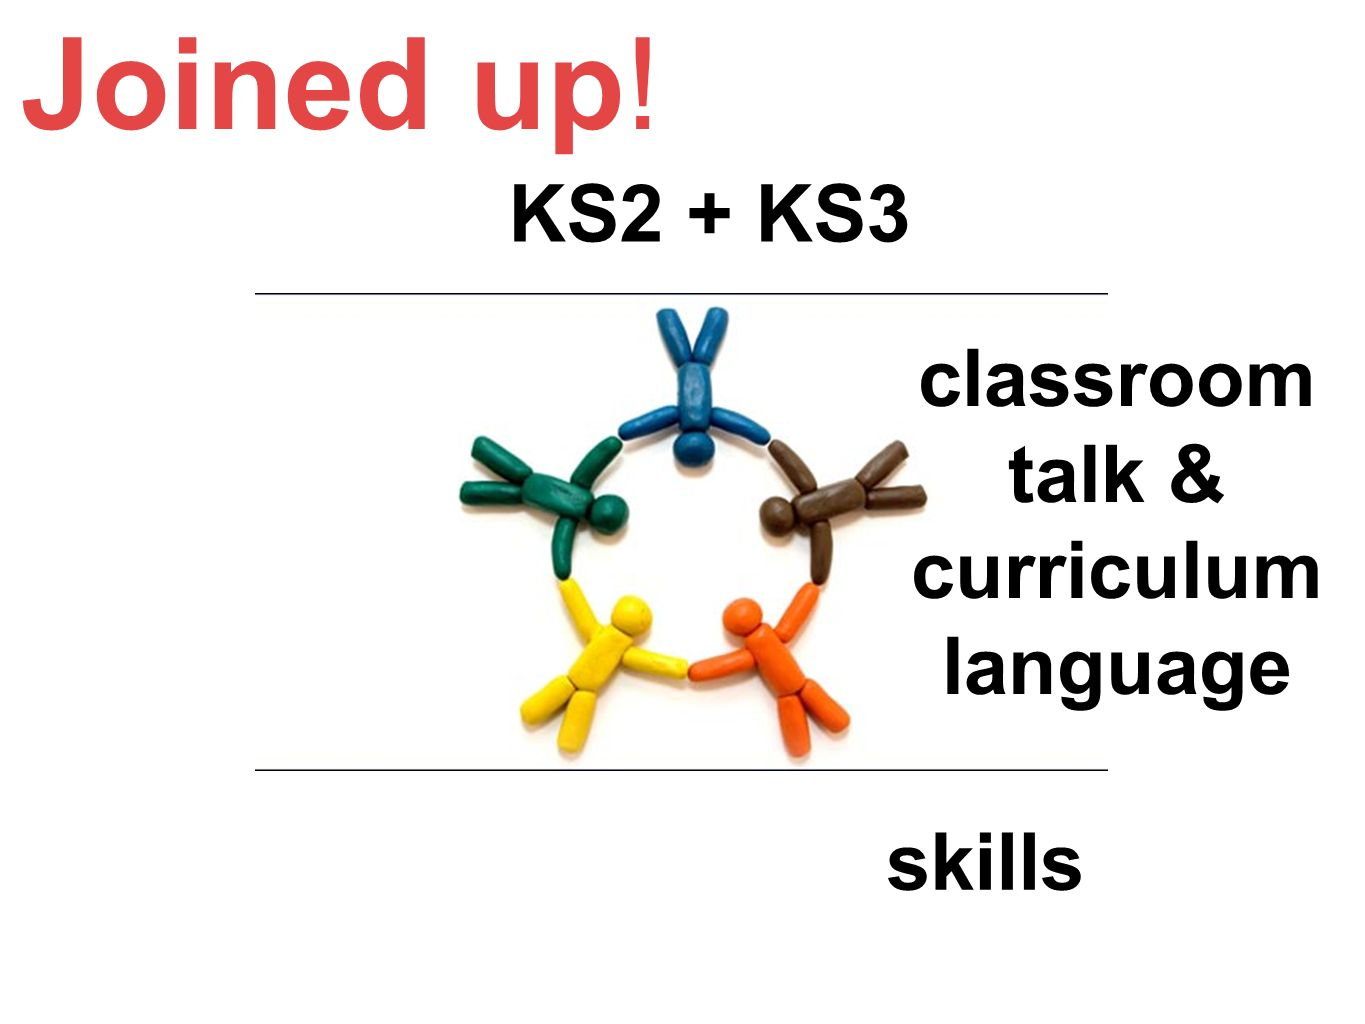 KS2 + KS3 Joined up! classroom talk & curriculum language skills